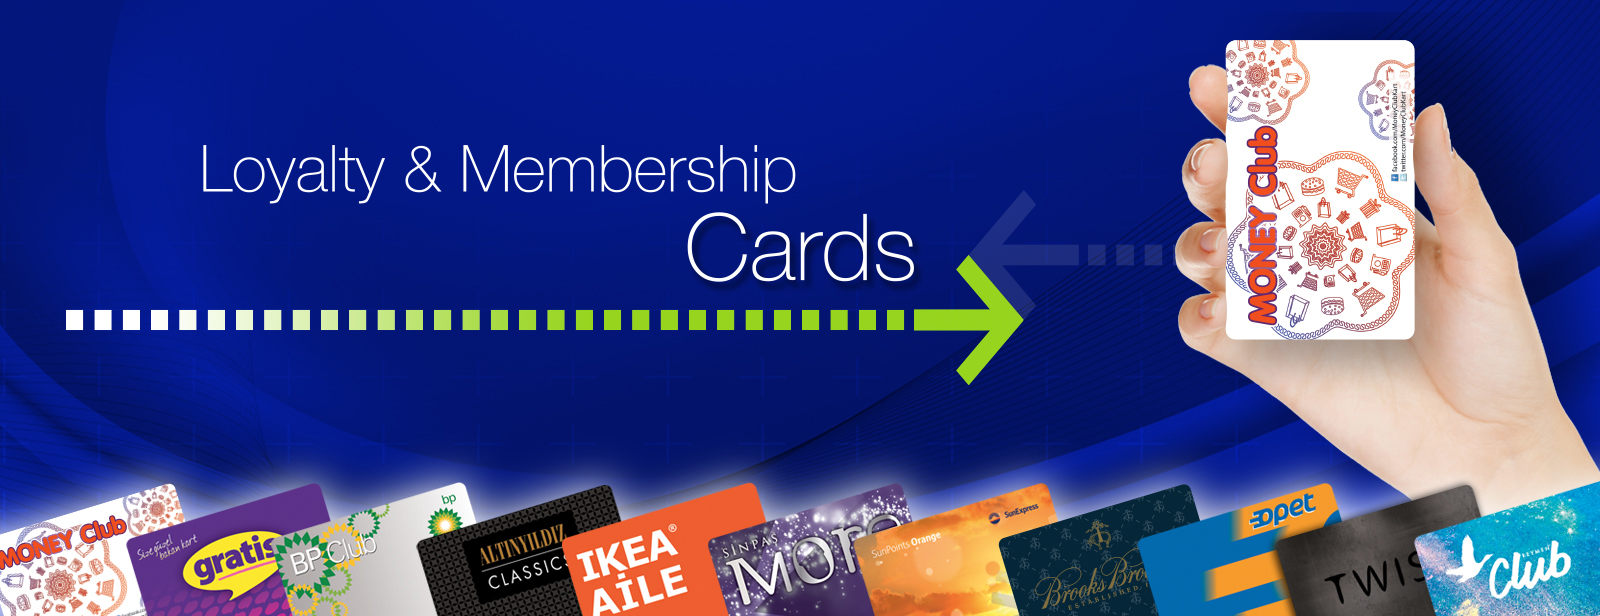 Loyalty & Membership Cards